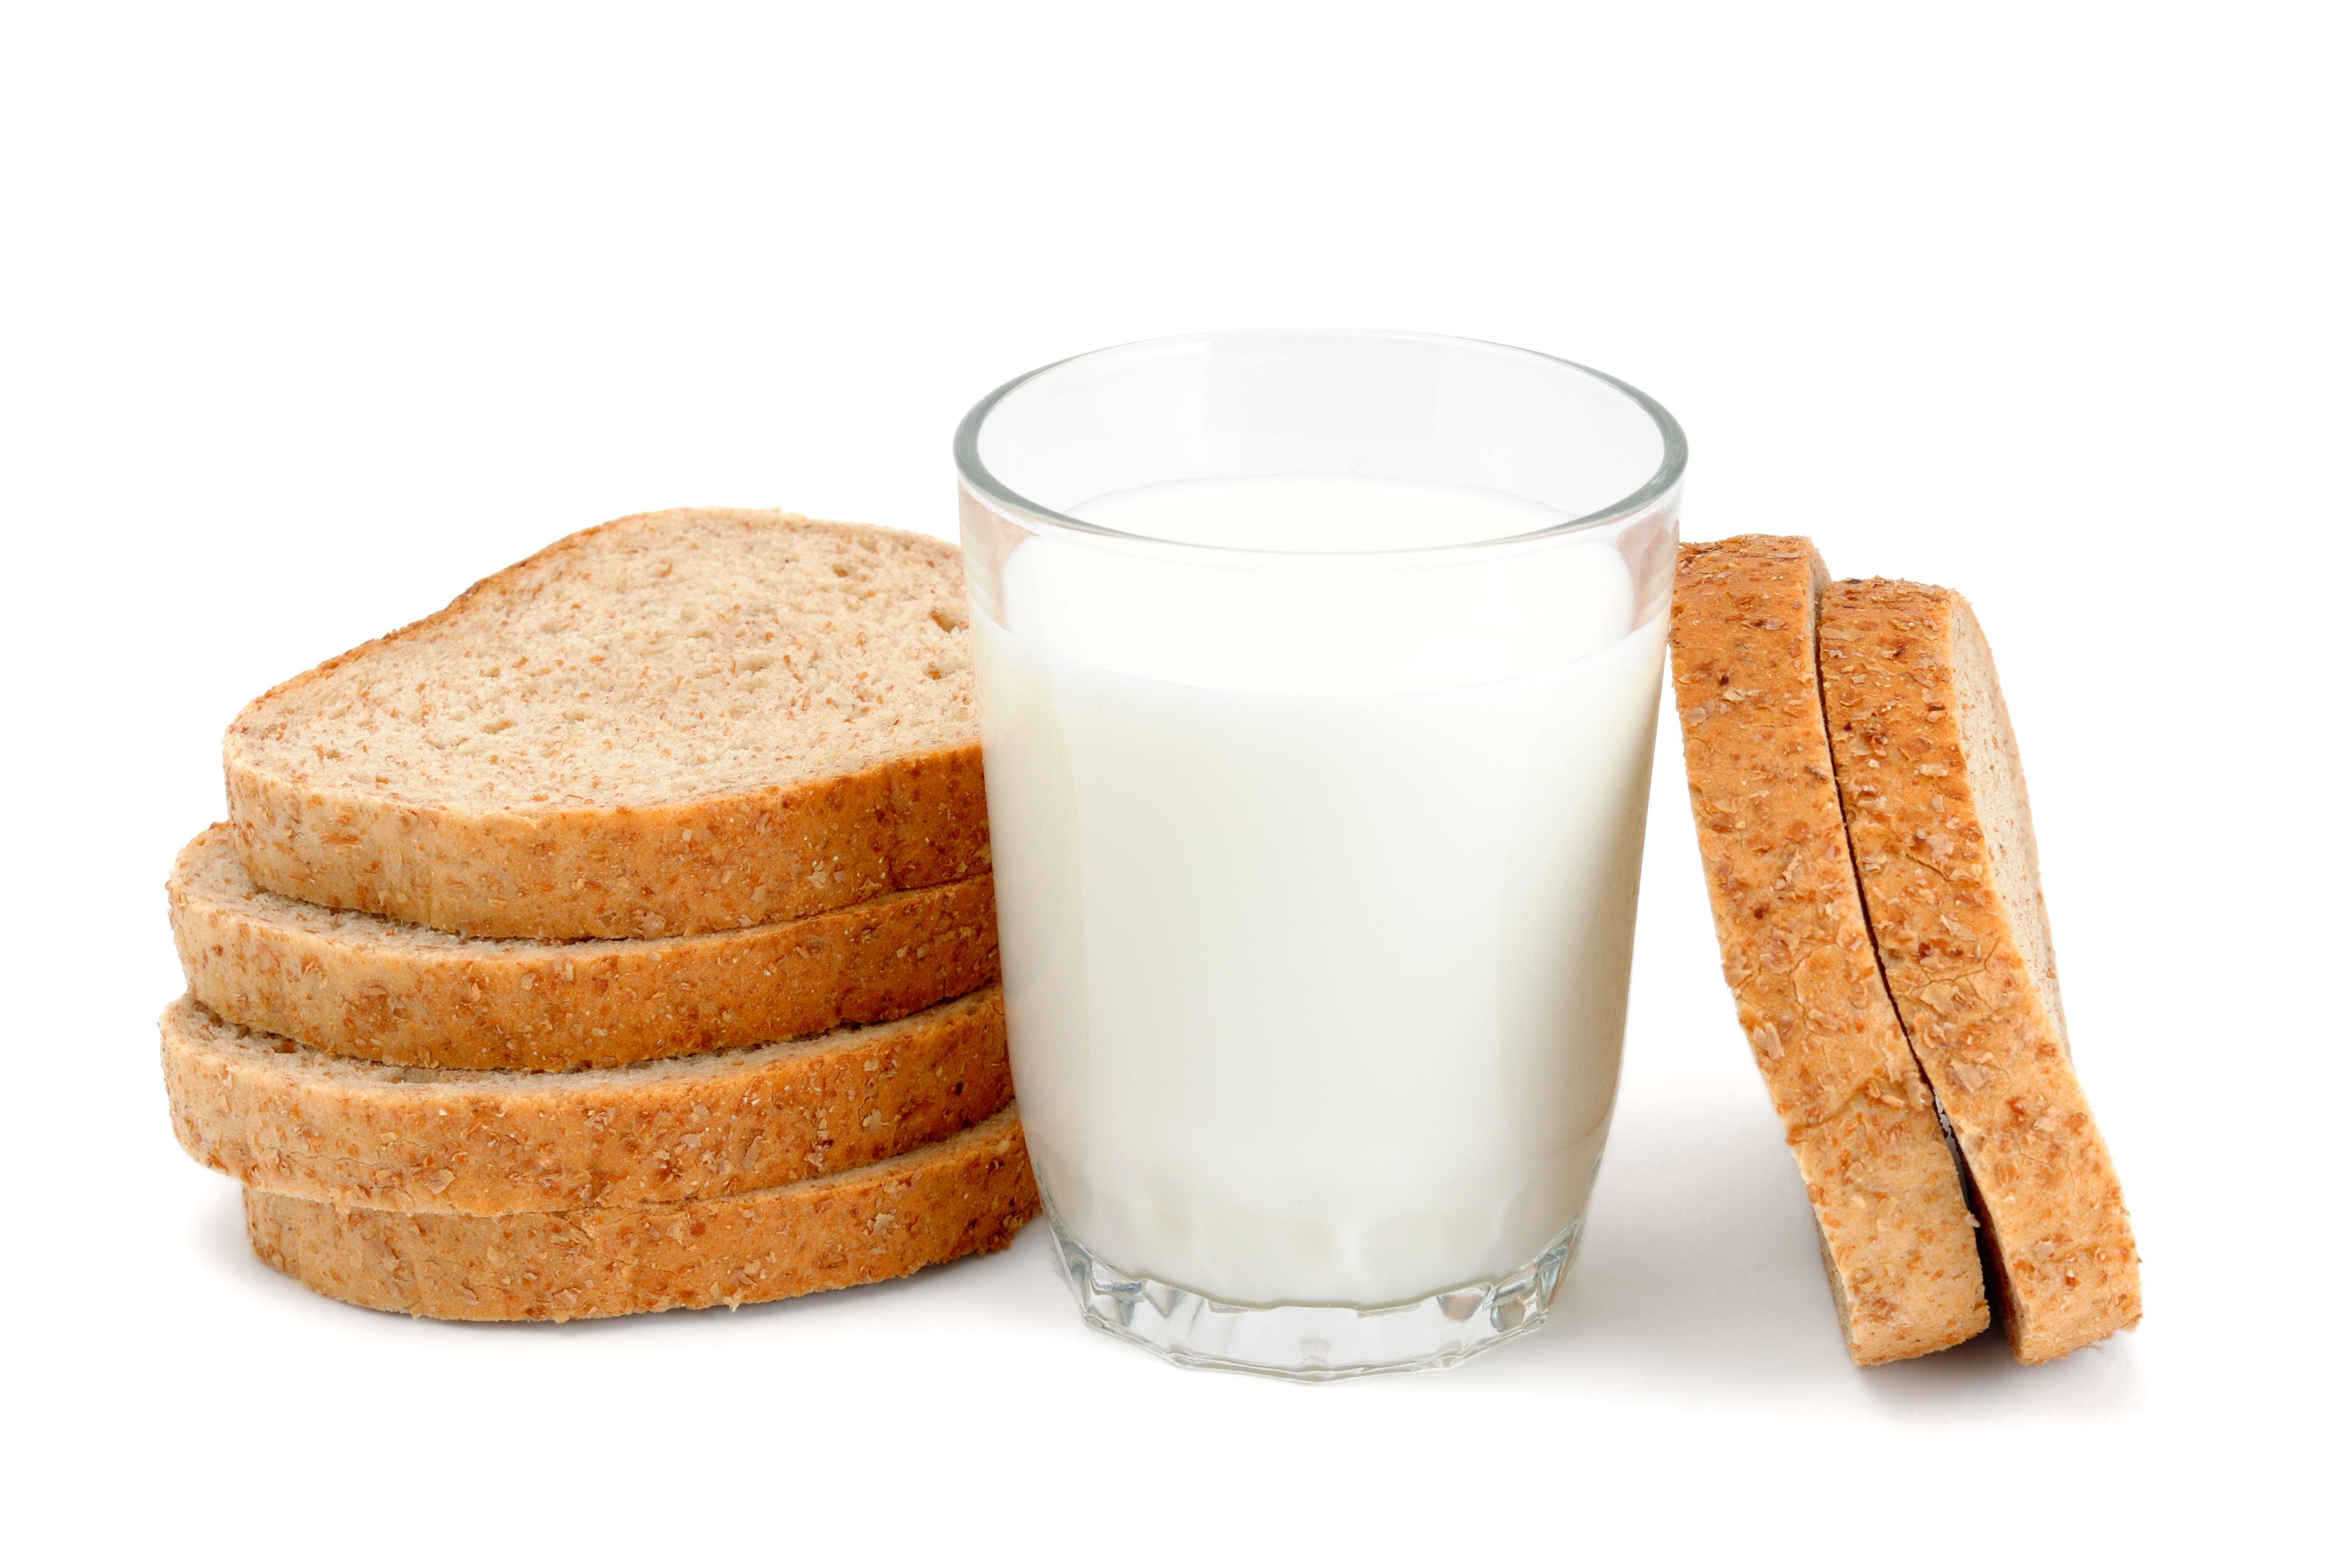 Bread images Milk And Bread HD wallpaper and background photos ...